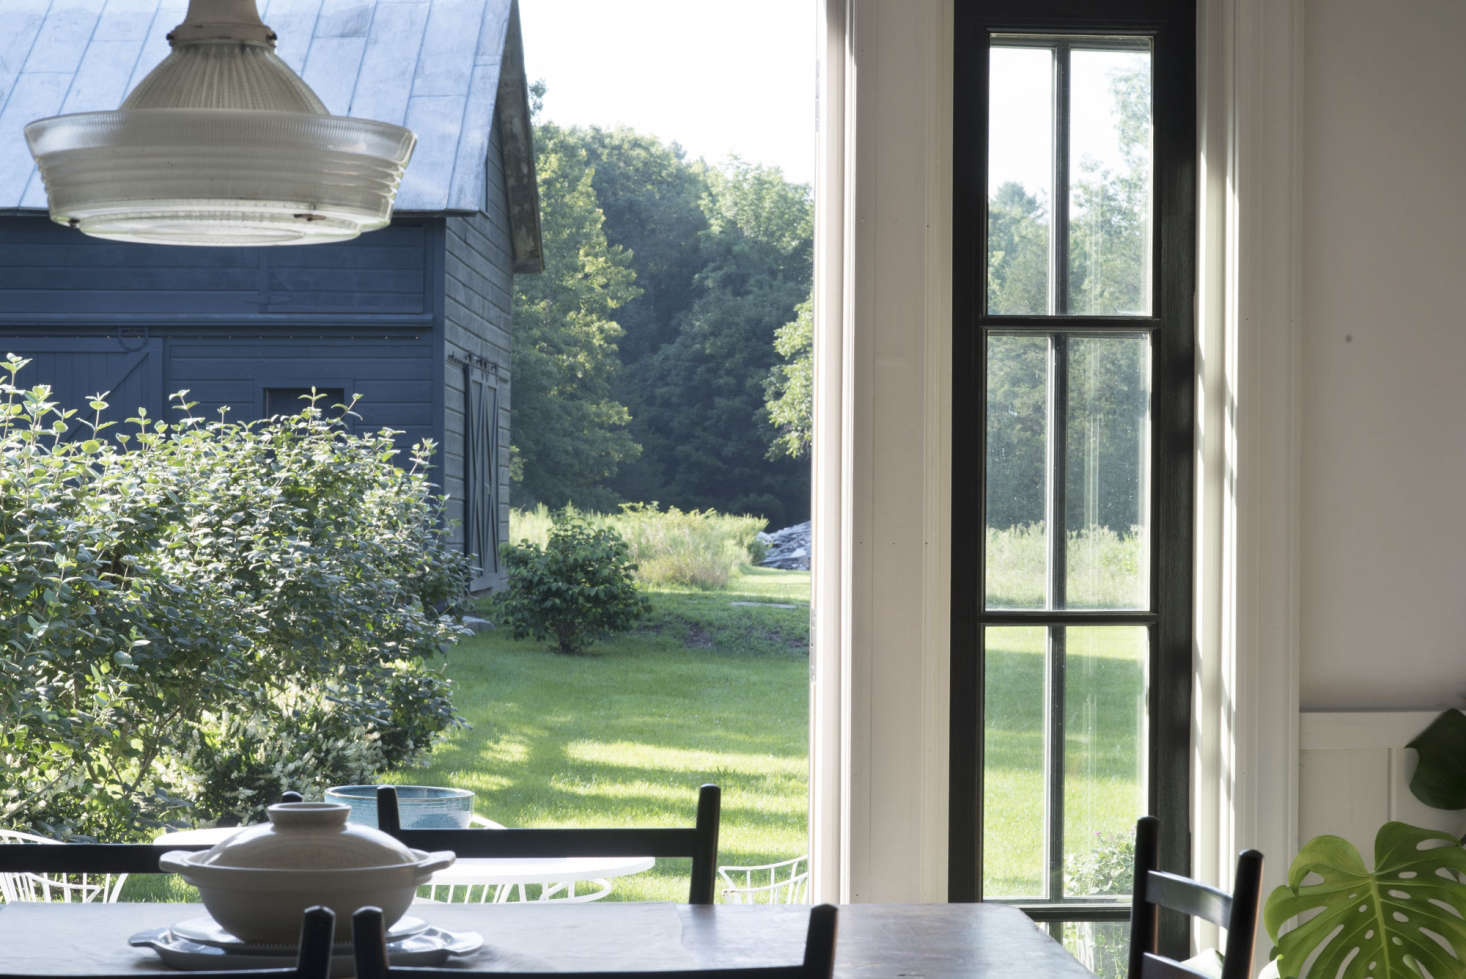 Photograph by Mylene Pionilla, from Architect Visit: An Antiquarian Farmhouse in Upstate New York Transformed.